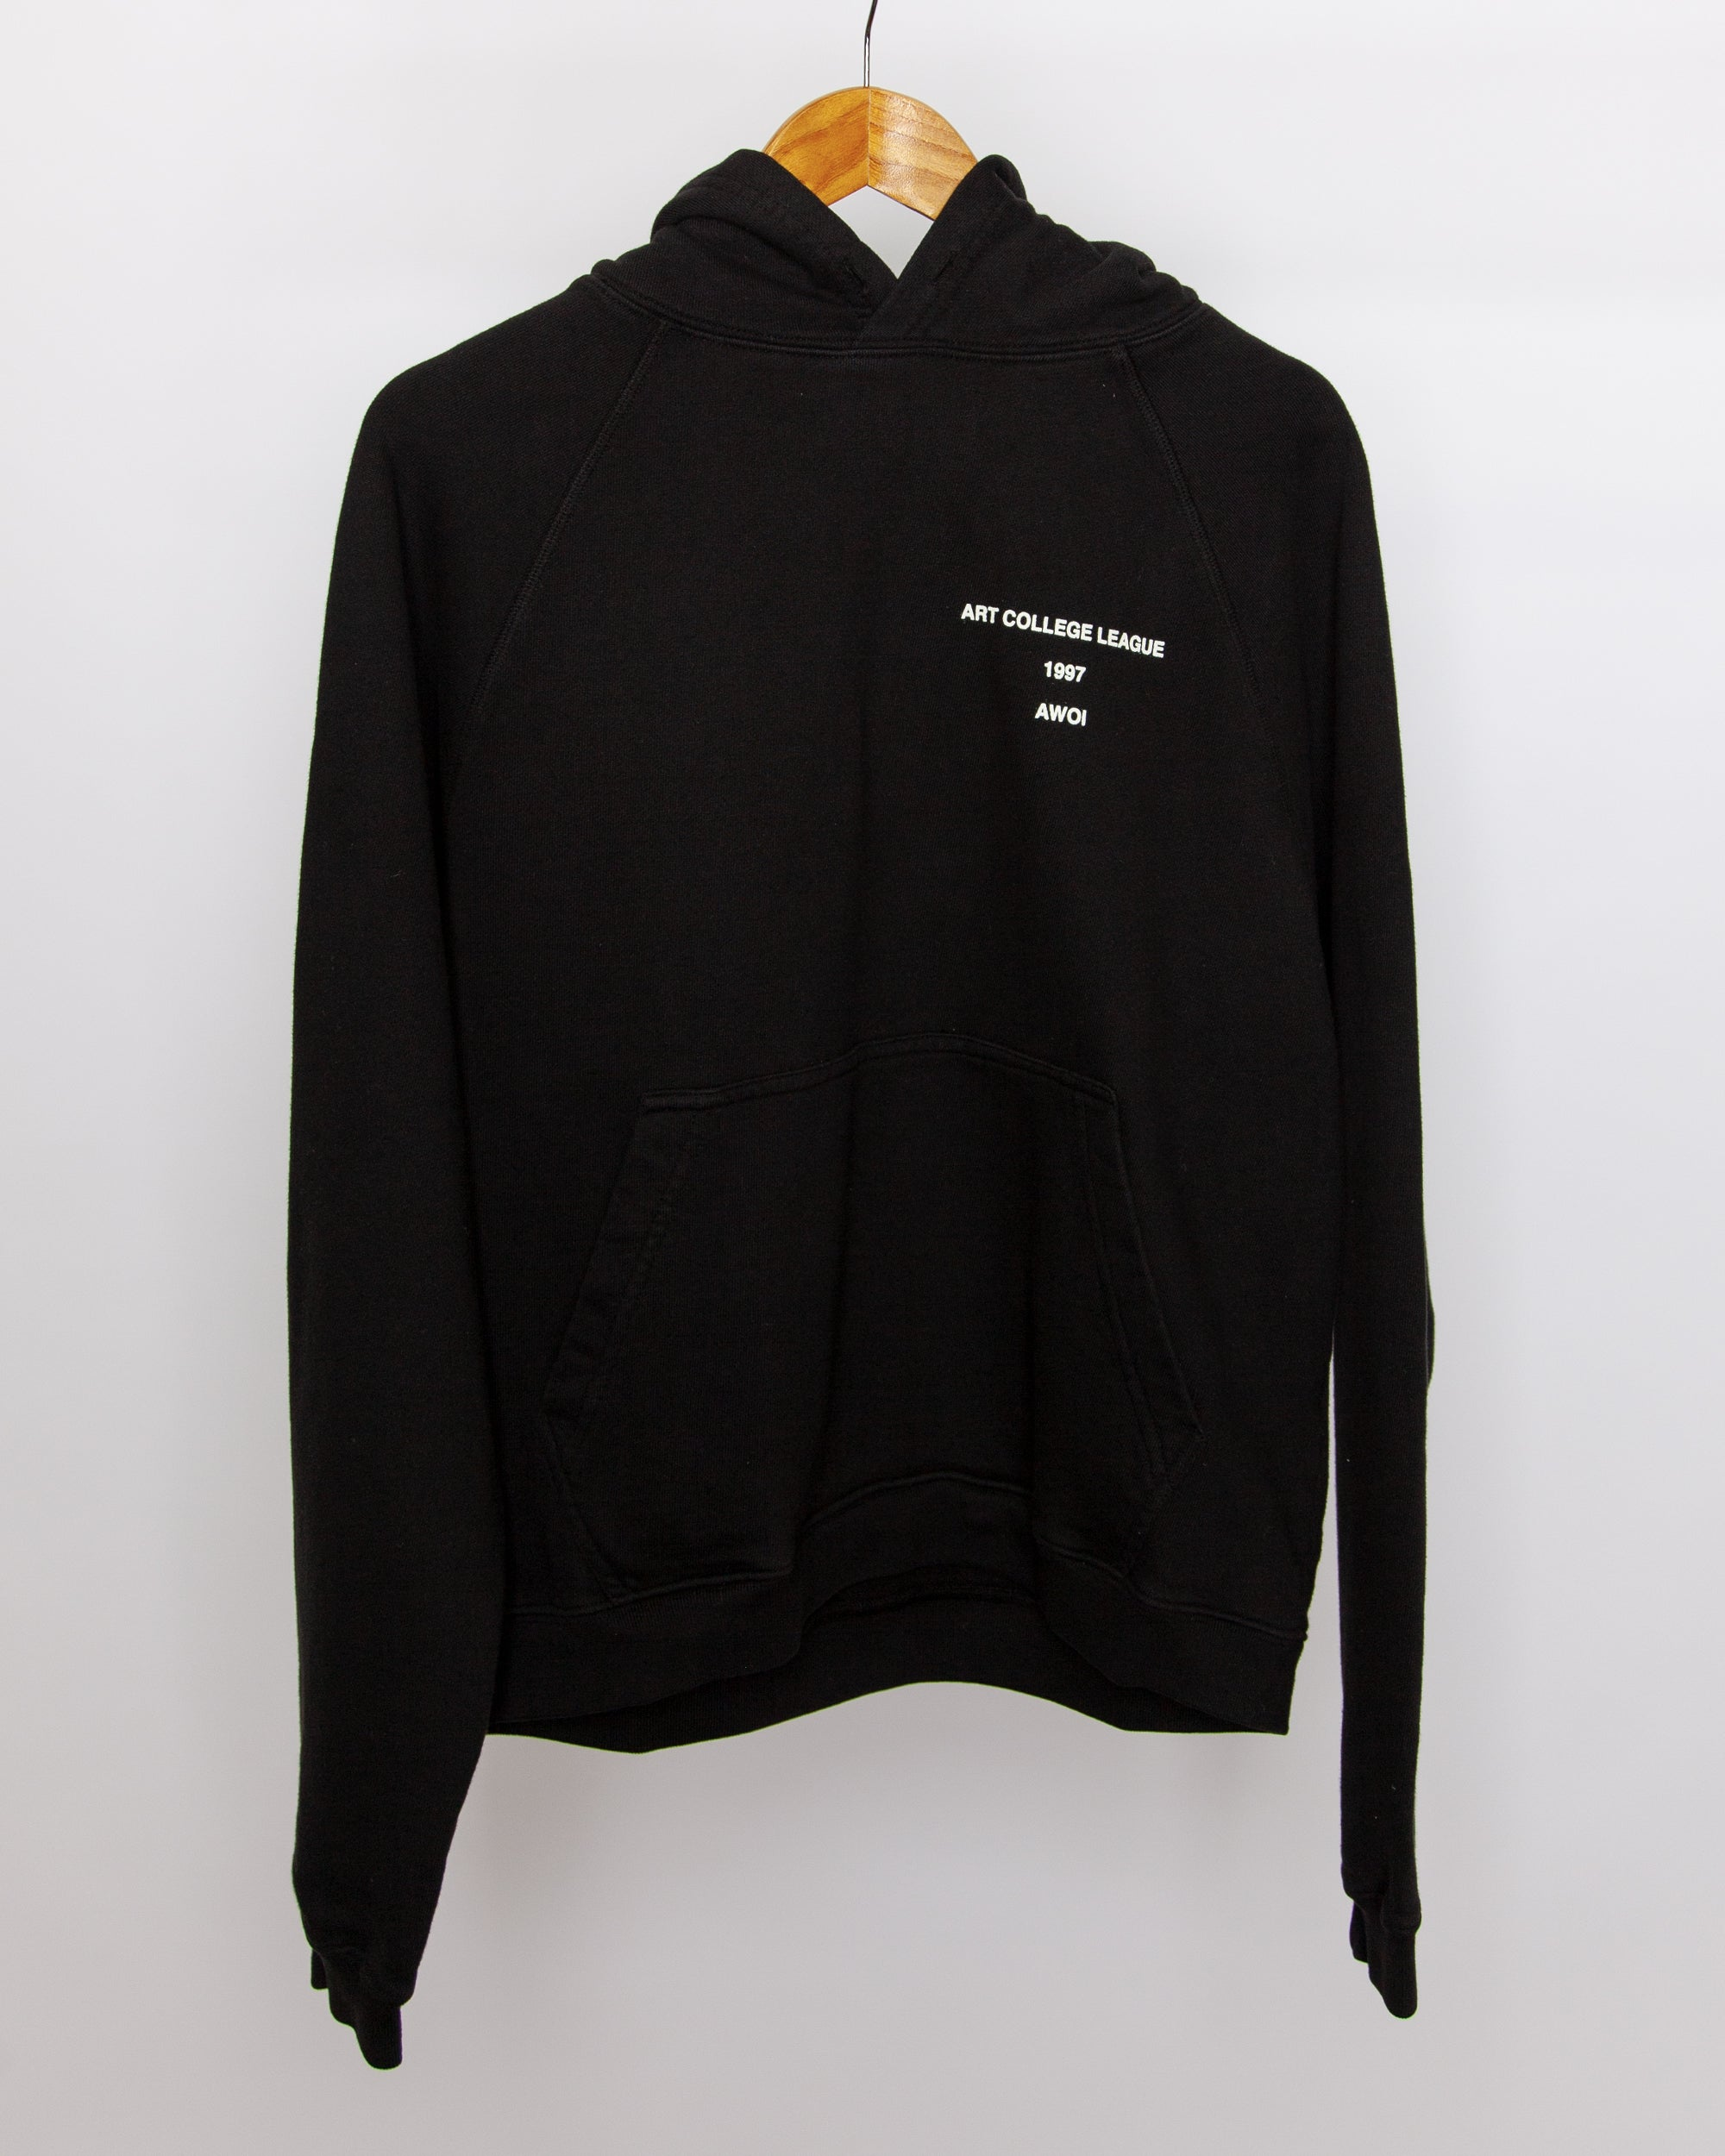 Fever Dream - Art College League Hoodie in Black